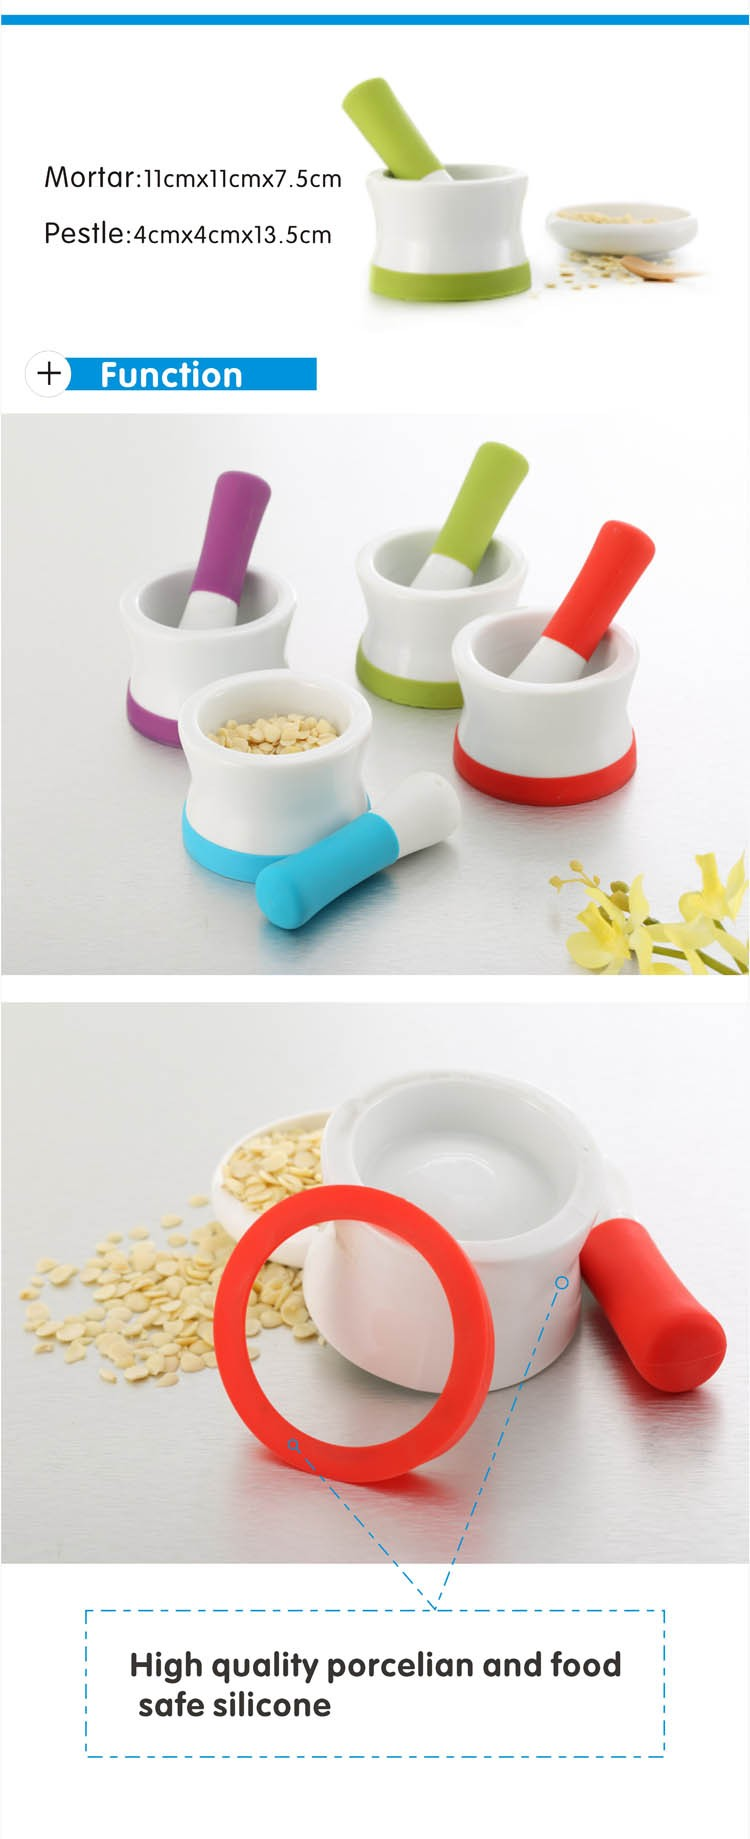 Eco friendly ceramic pills wholesale mortar and pestle with silicone